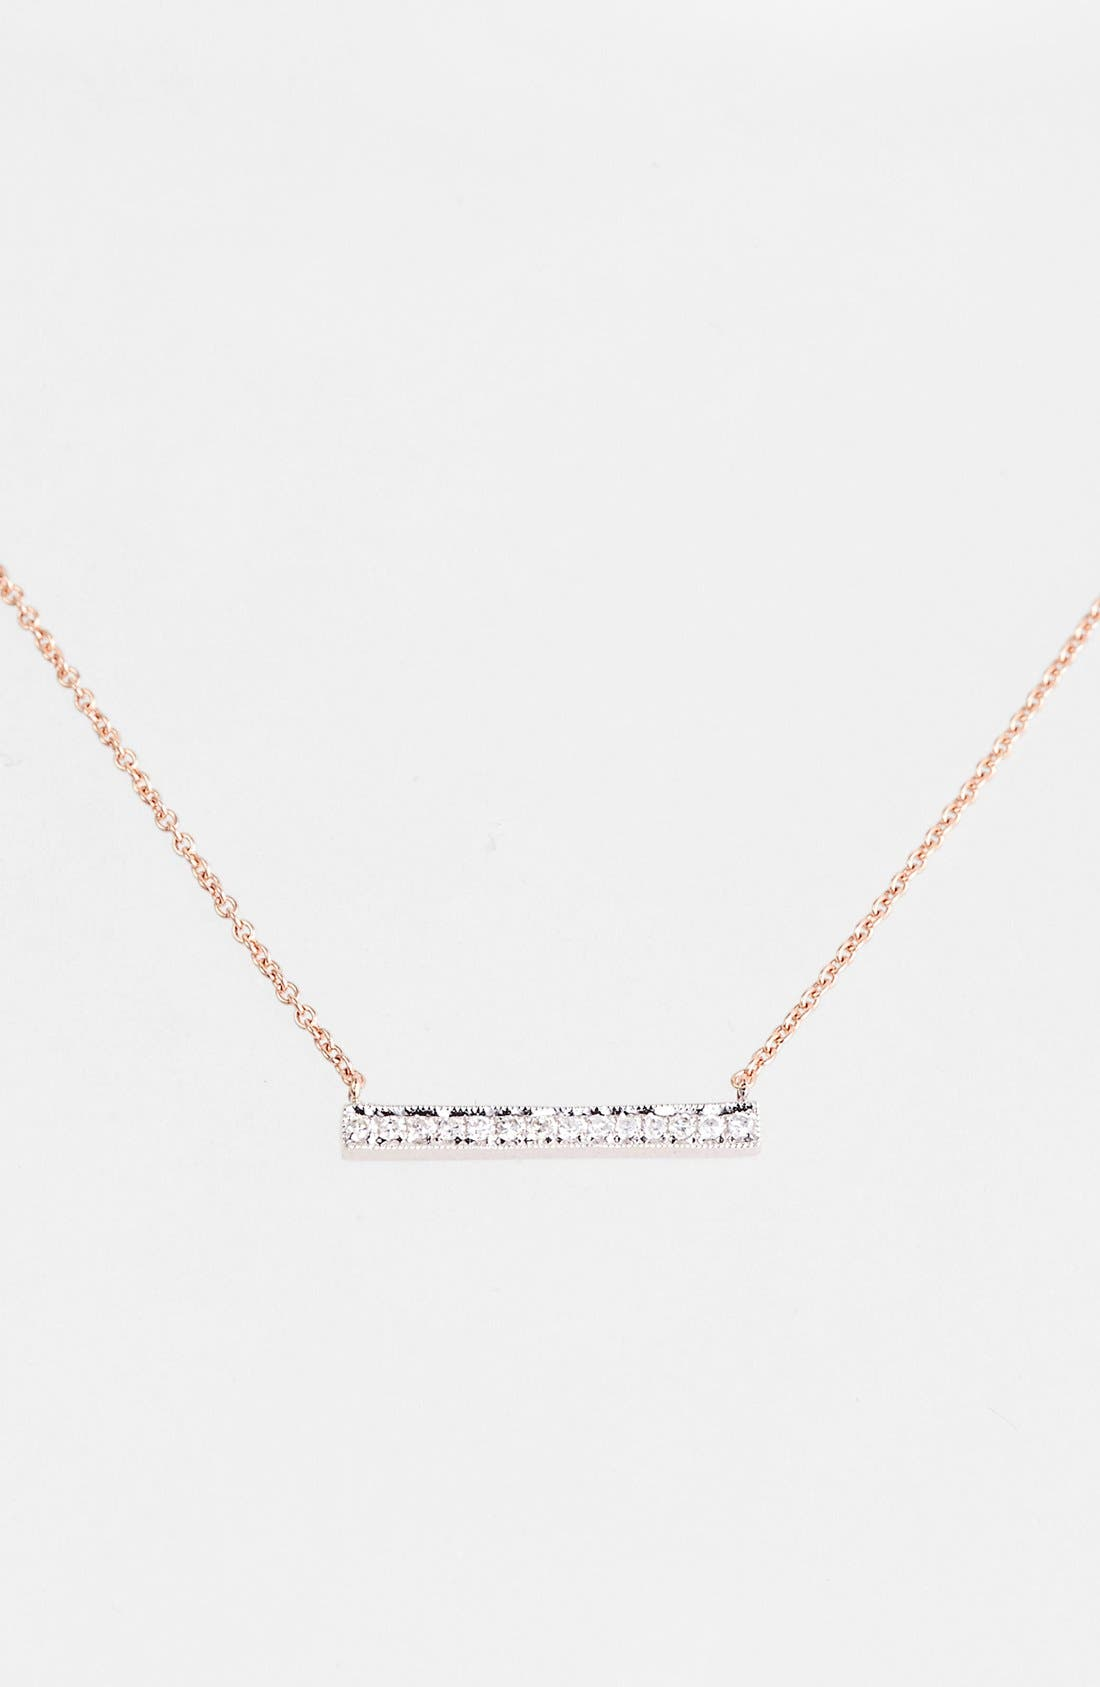 Dana Rebecca Designs 'Sylvie Rose' Medium Diamond Bar Pendant Necklace